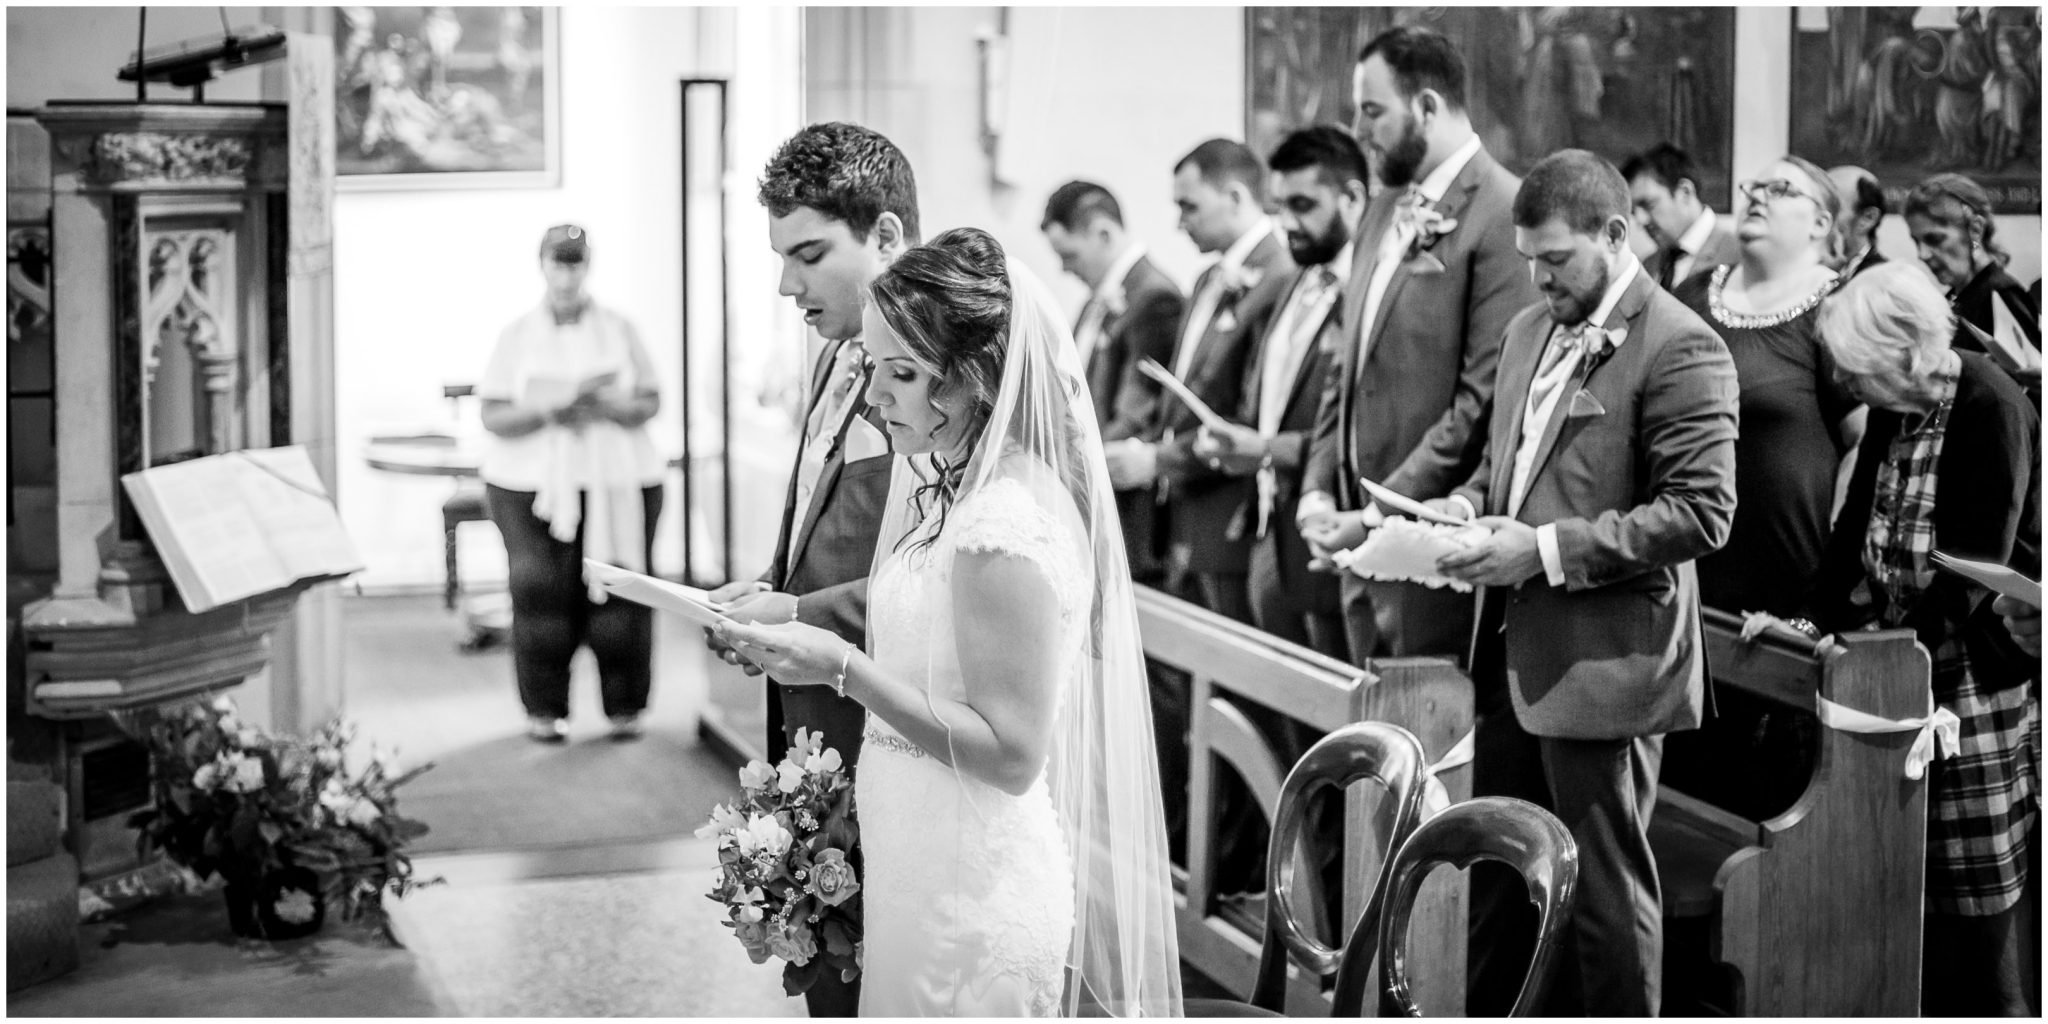 Hymns during marriage service